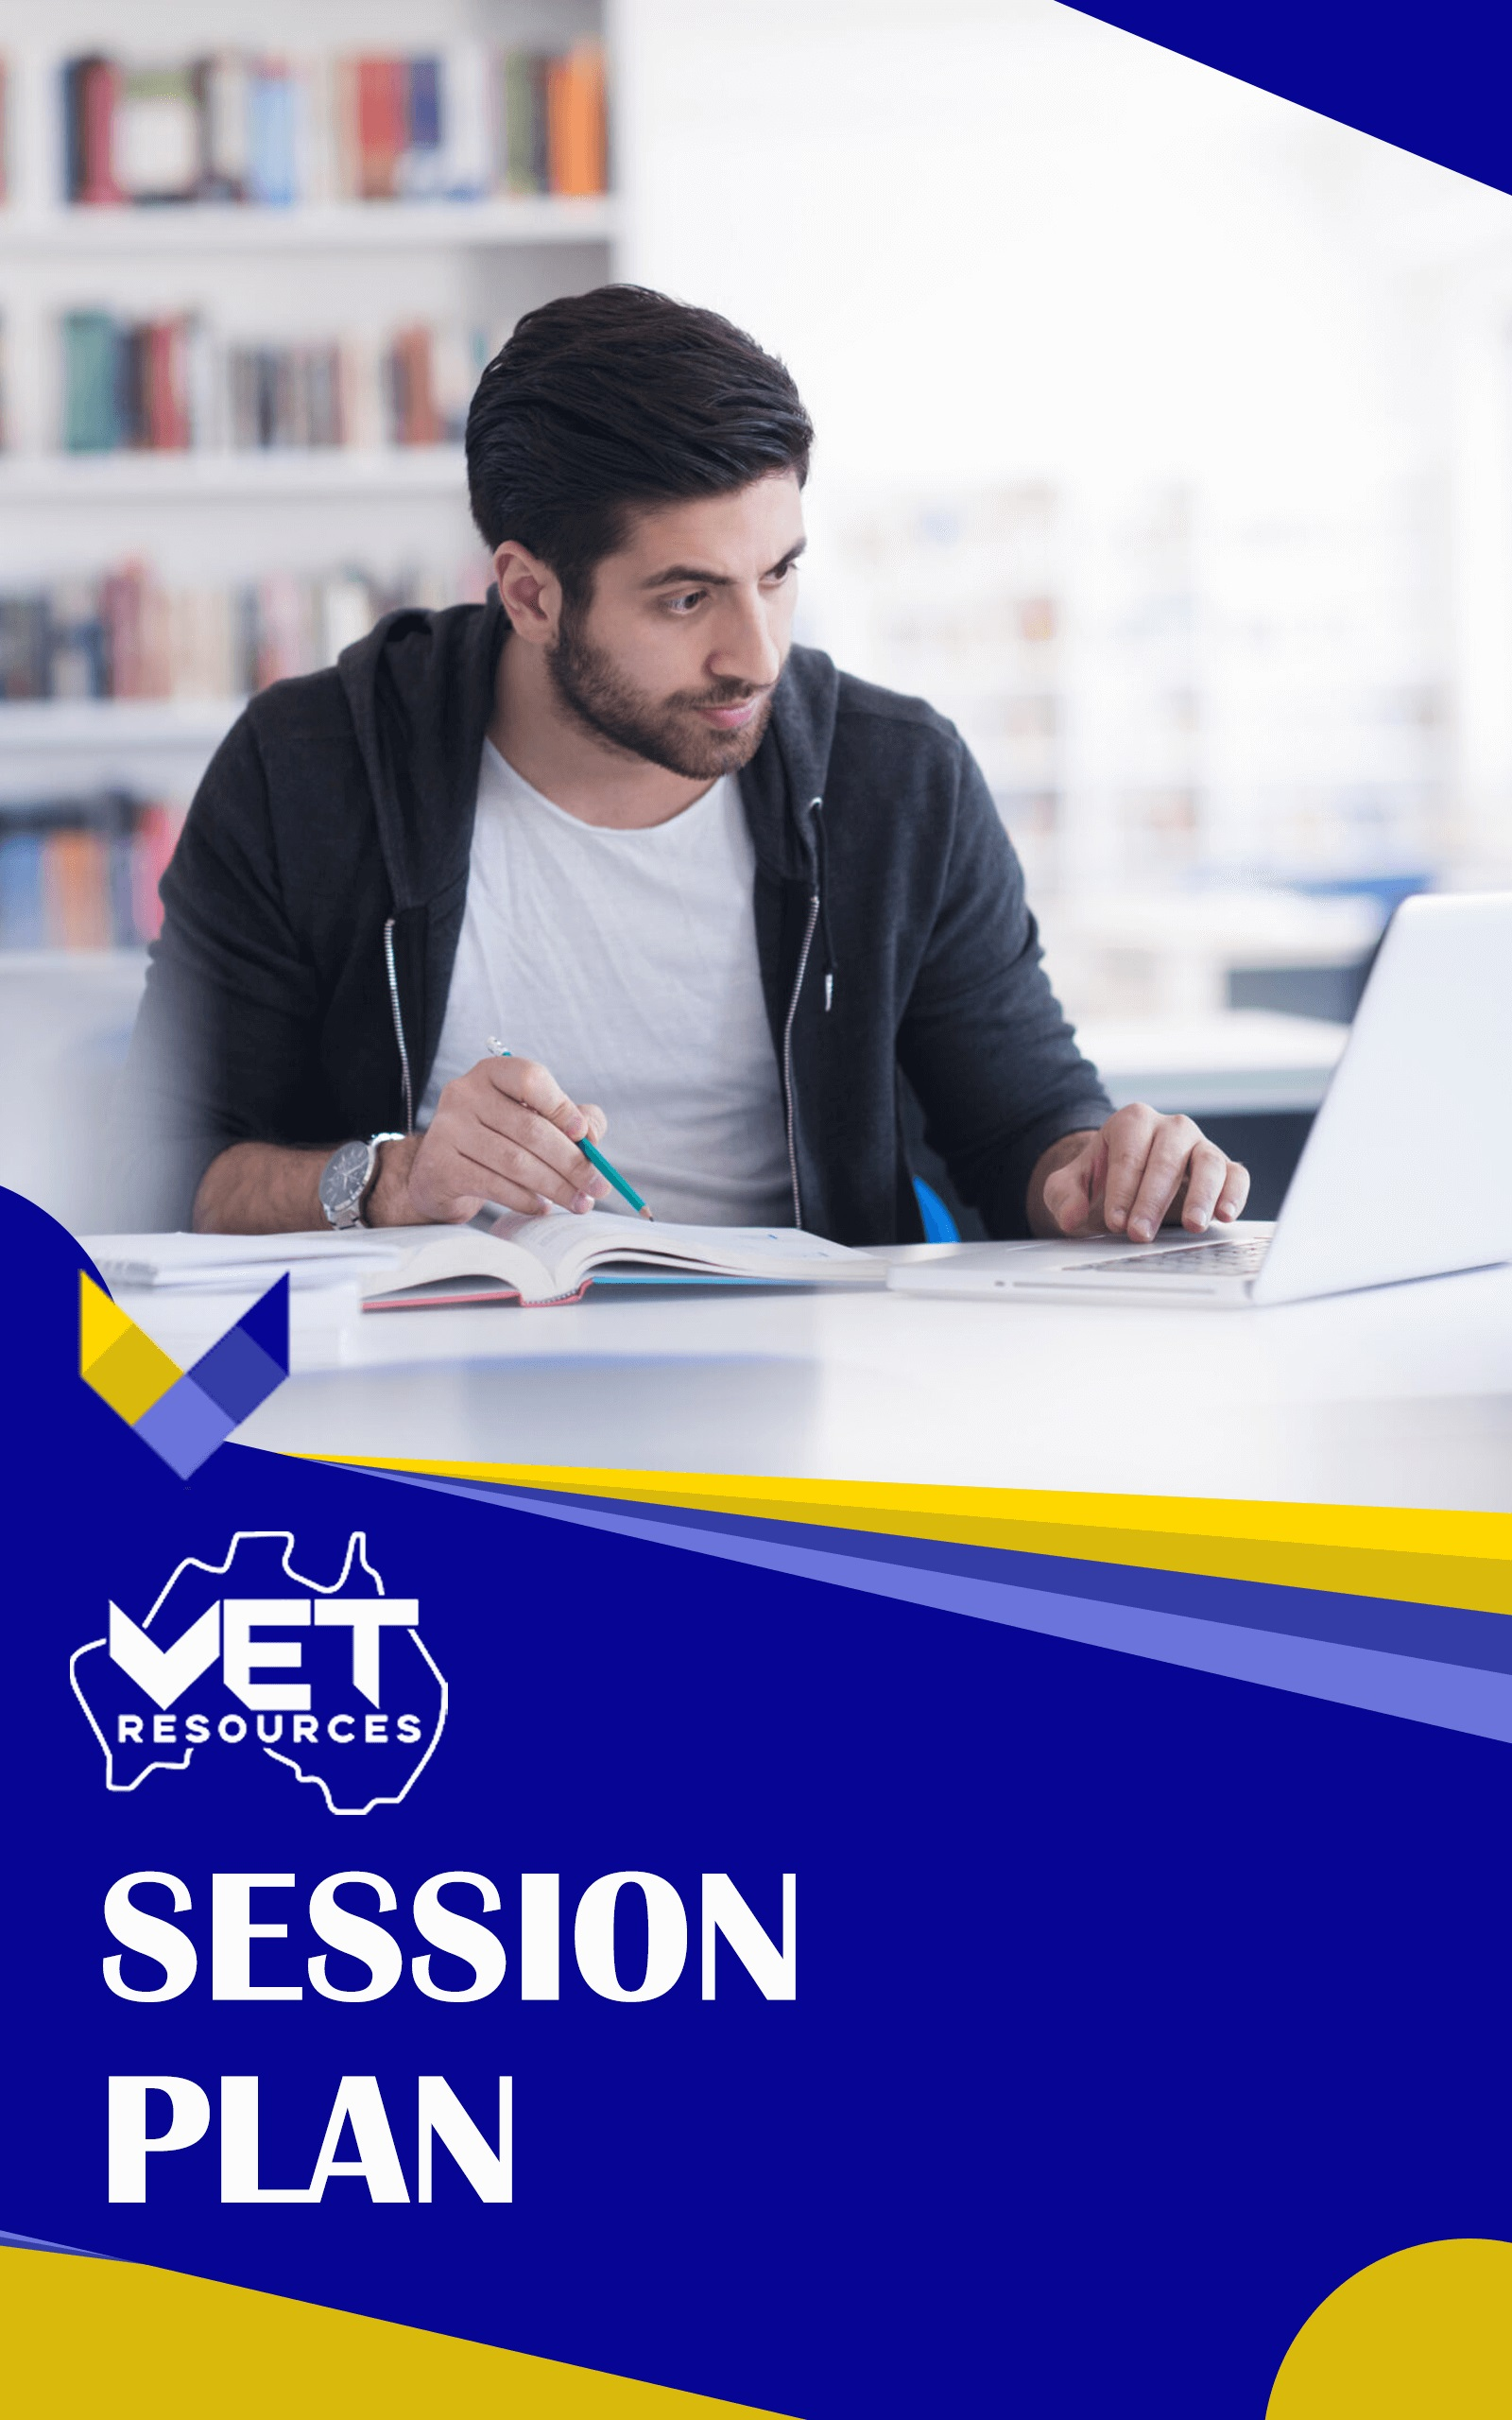 VET Resources -Session Plan